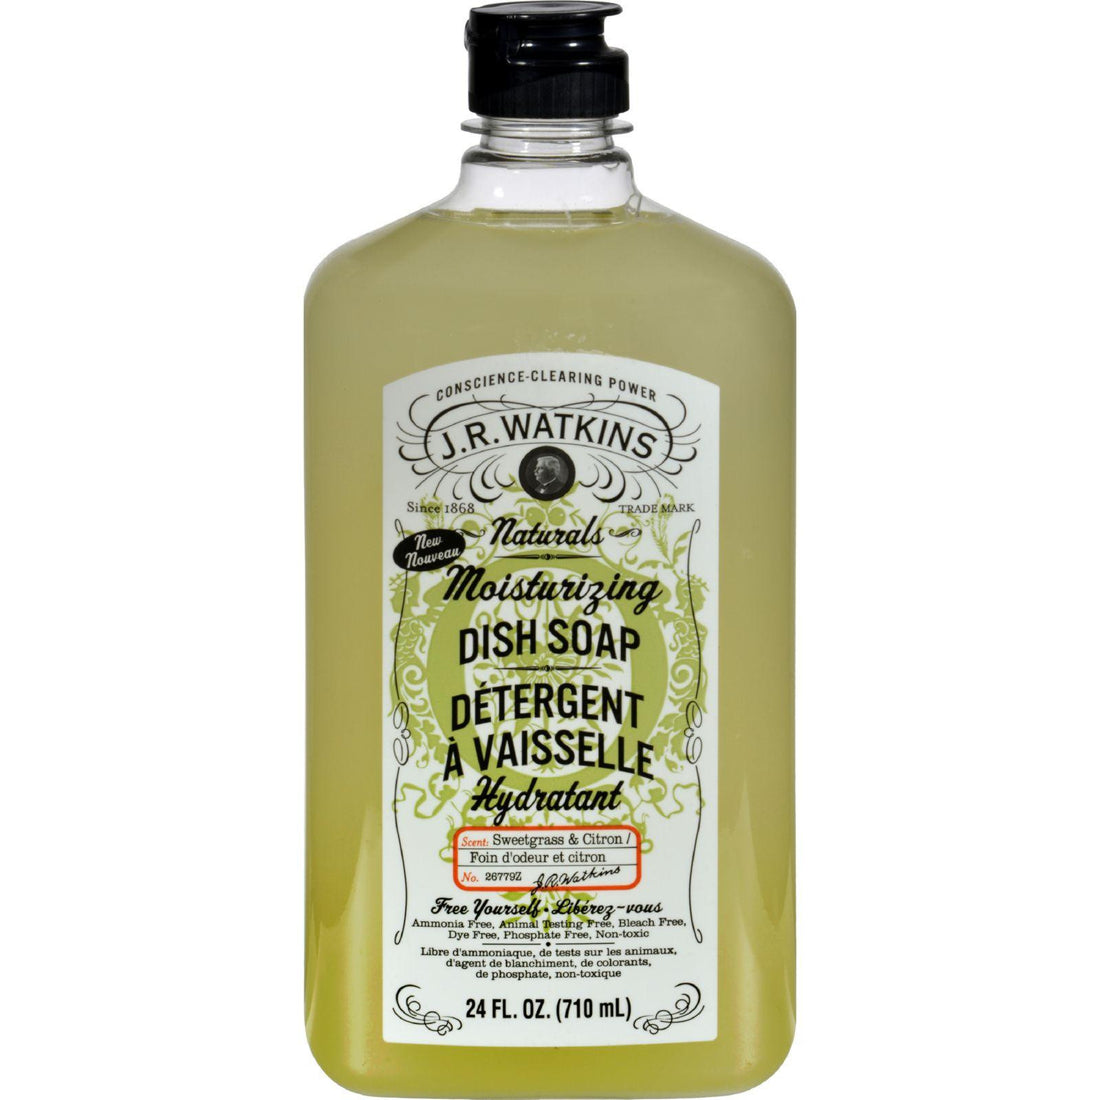 Mother Mantis: J.r. Watkins Dish Soap - Moisturizing - Sweetgrass And Citron - 24 Fl Oz J.r. Watkins